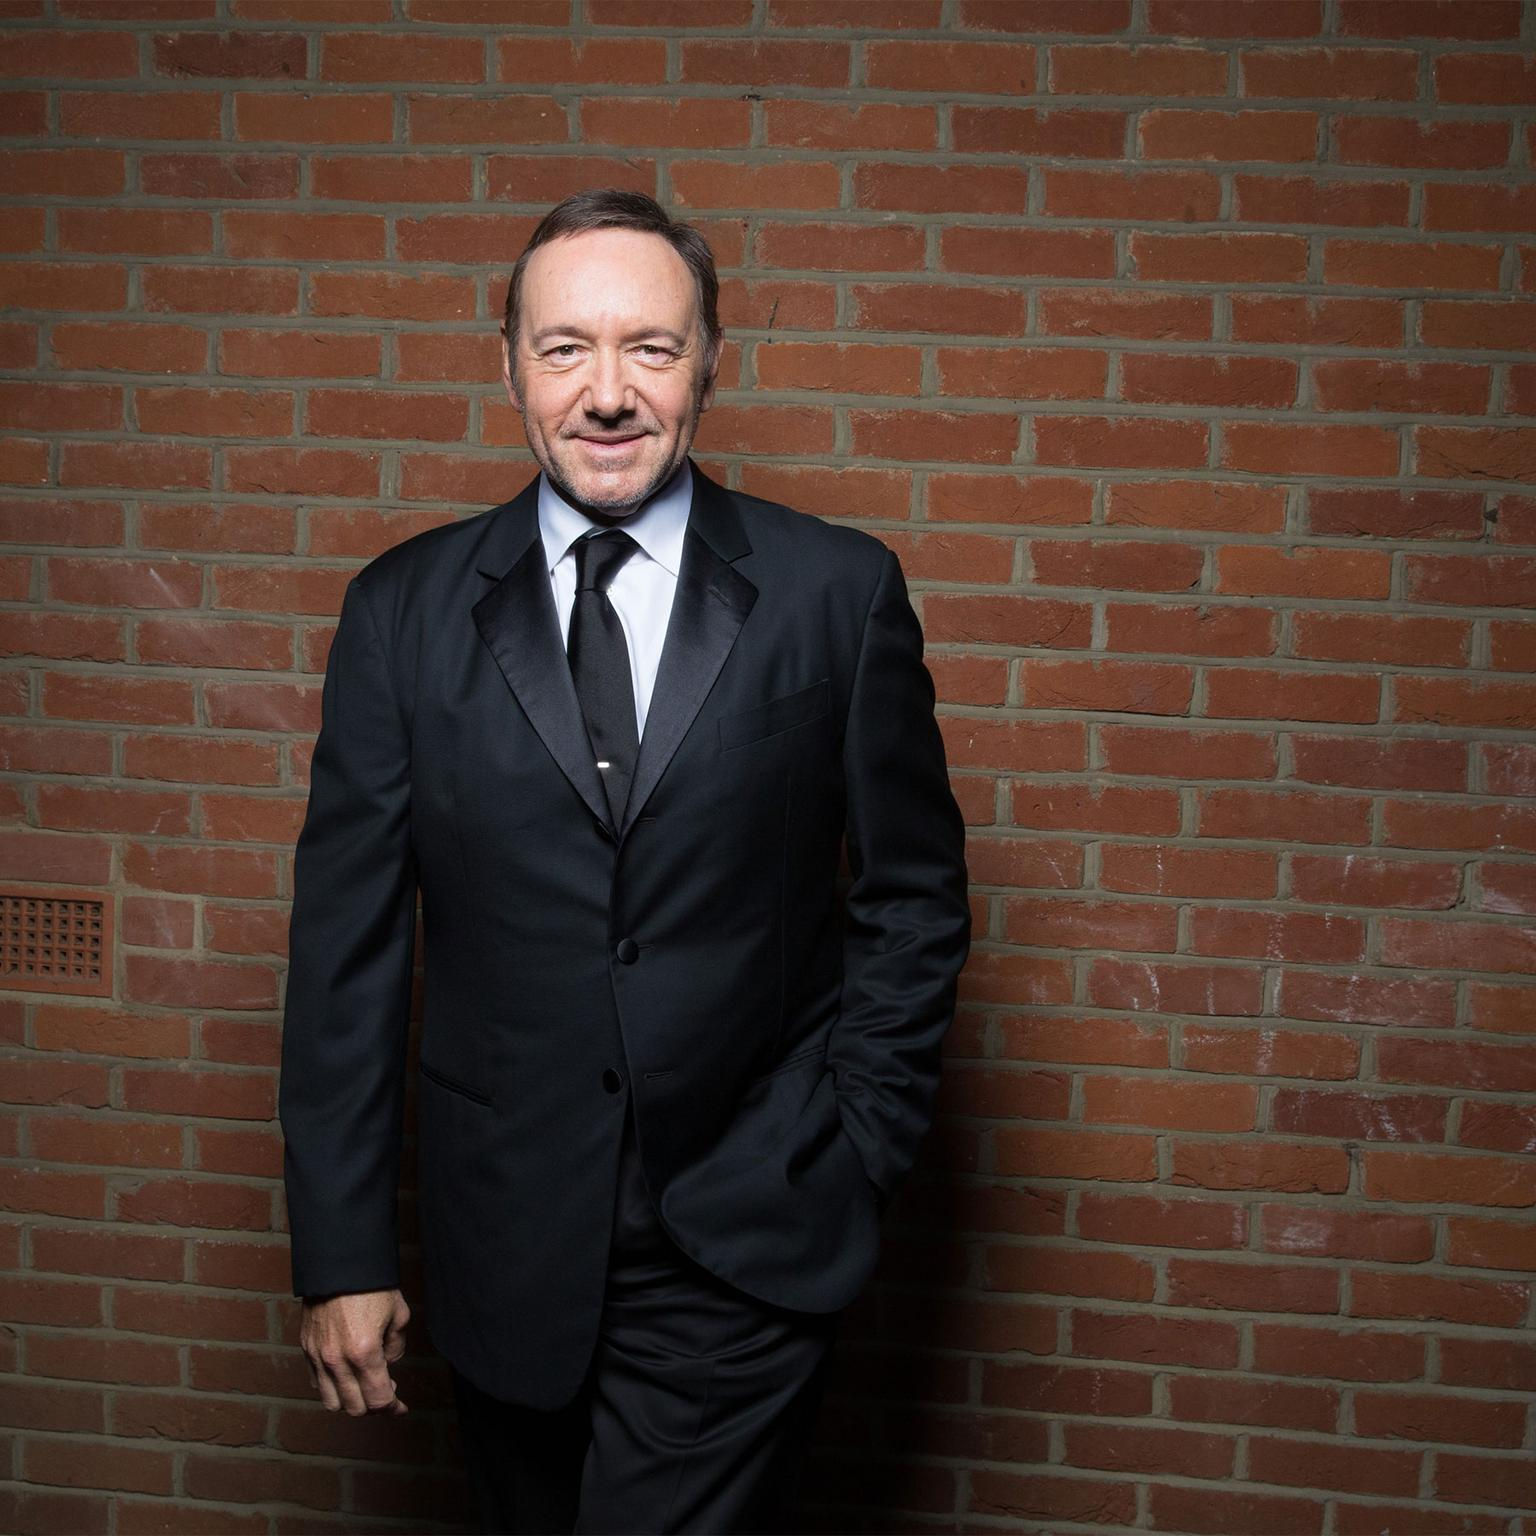 Kevin Spacey at the Elton John AIDS Foundation